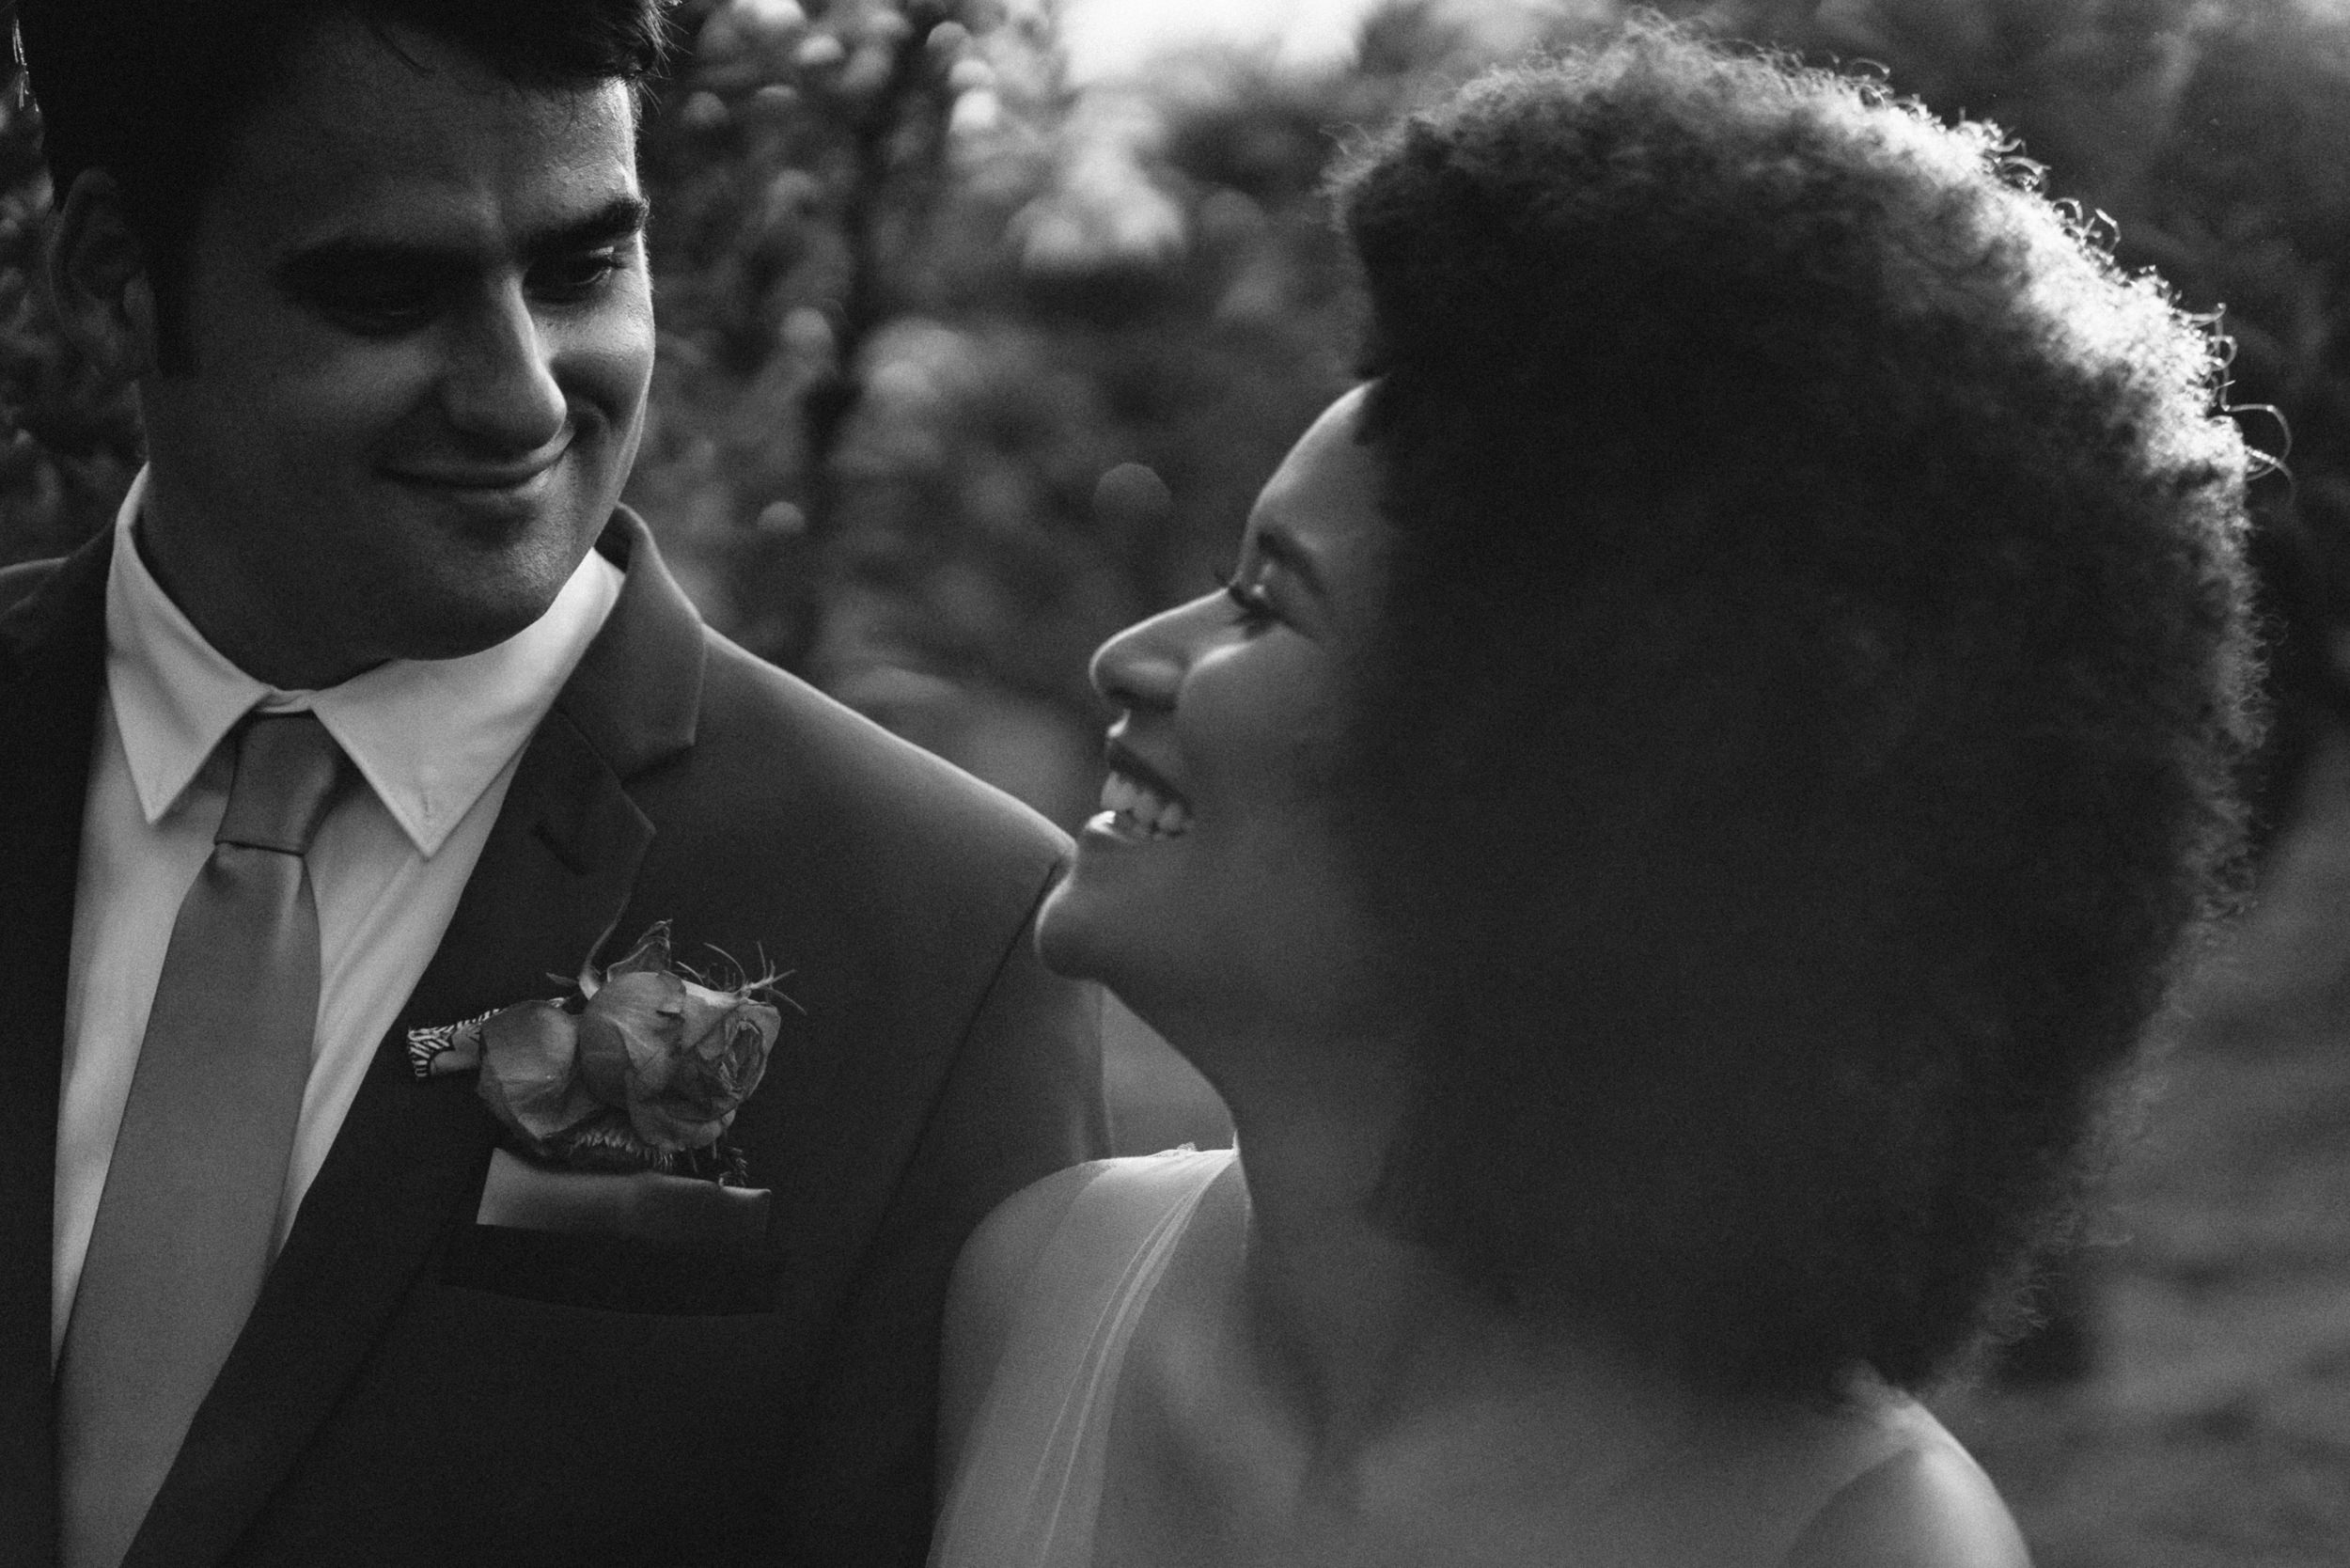 Renate & John - A colourful celebration at the Conservatory inFranschhoek, South Africa